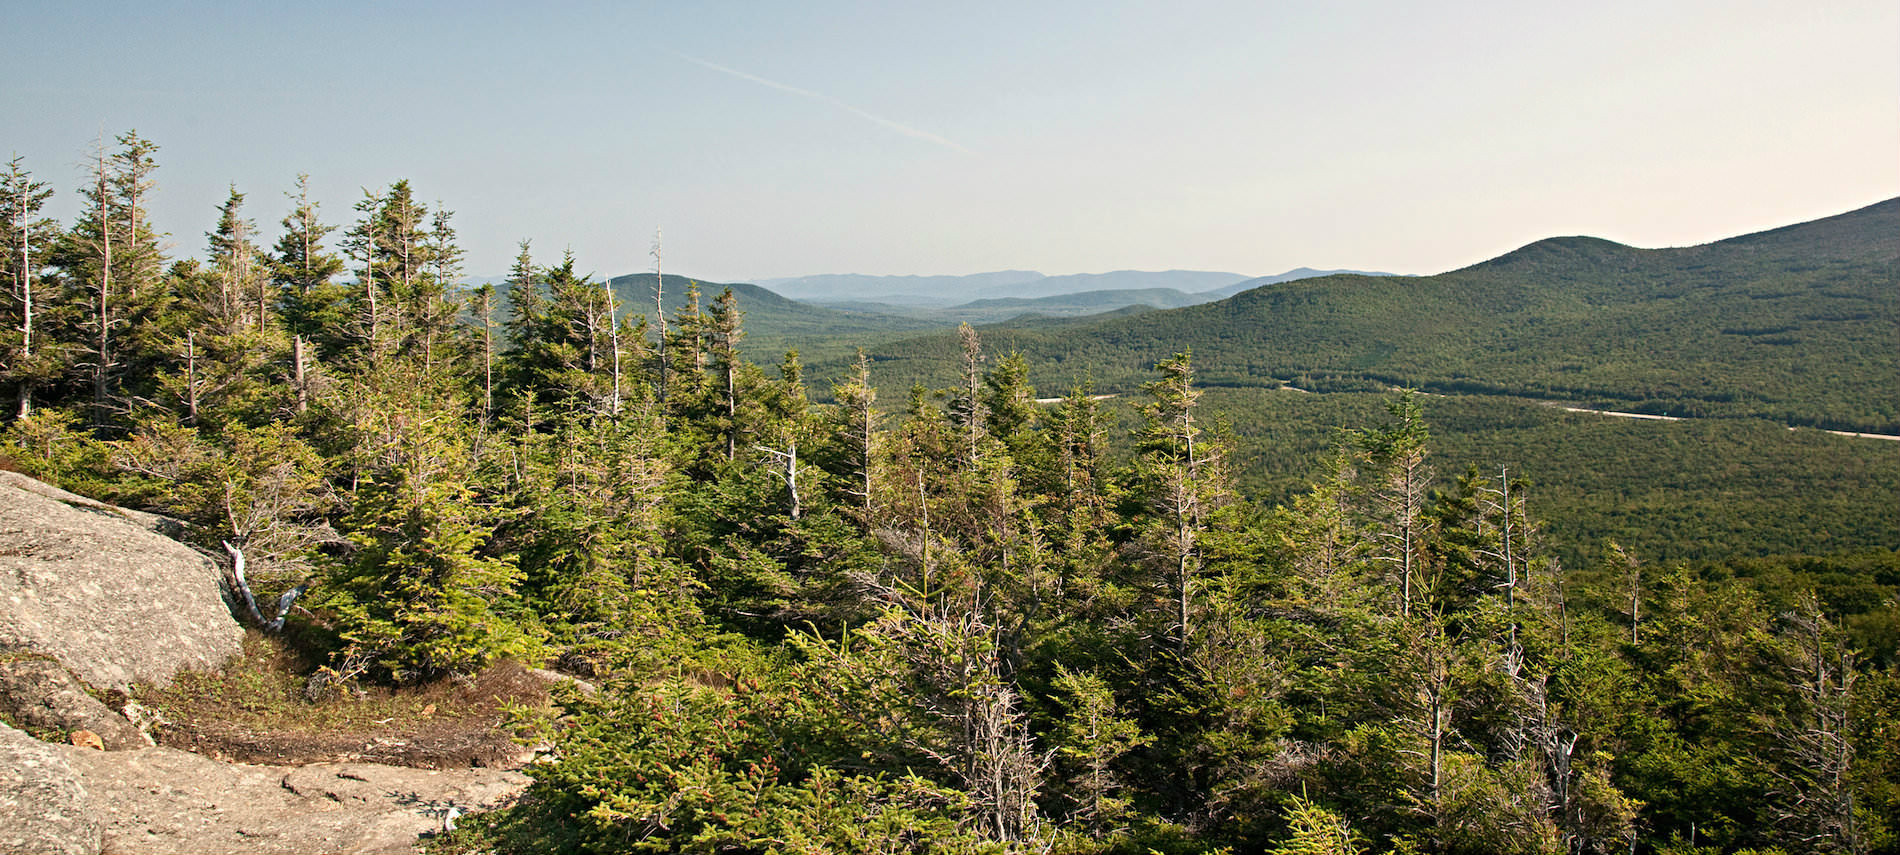 Top of cliff overlooking miles of hills forested with pine trees.